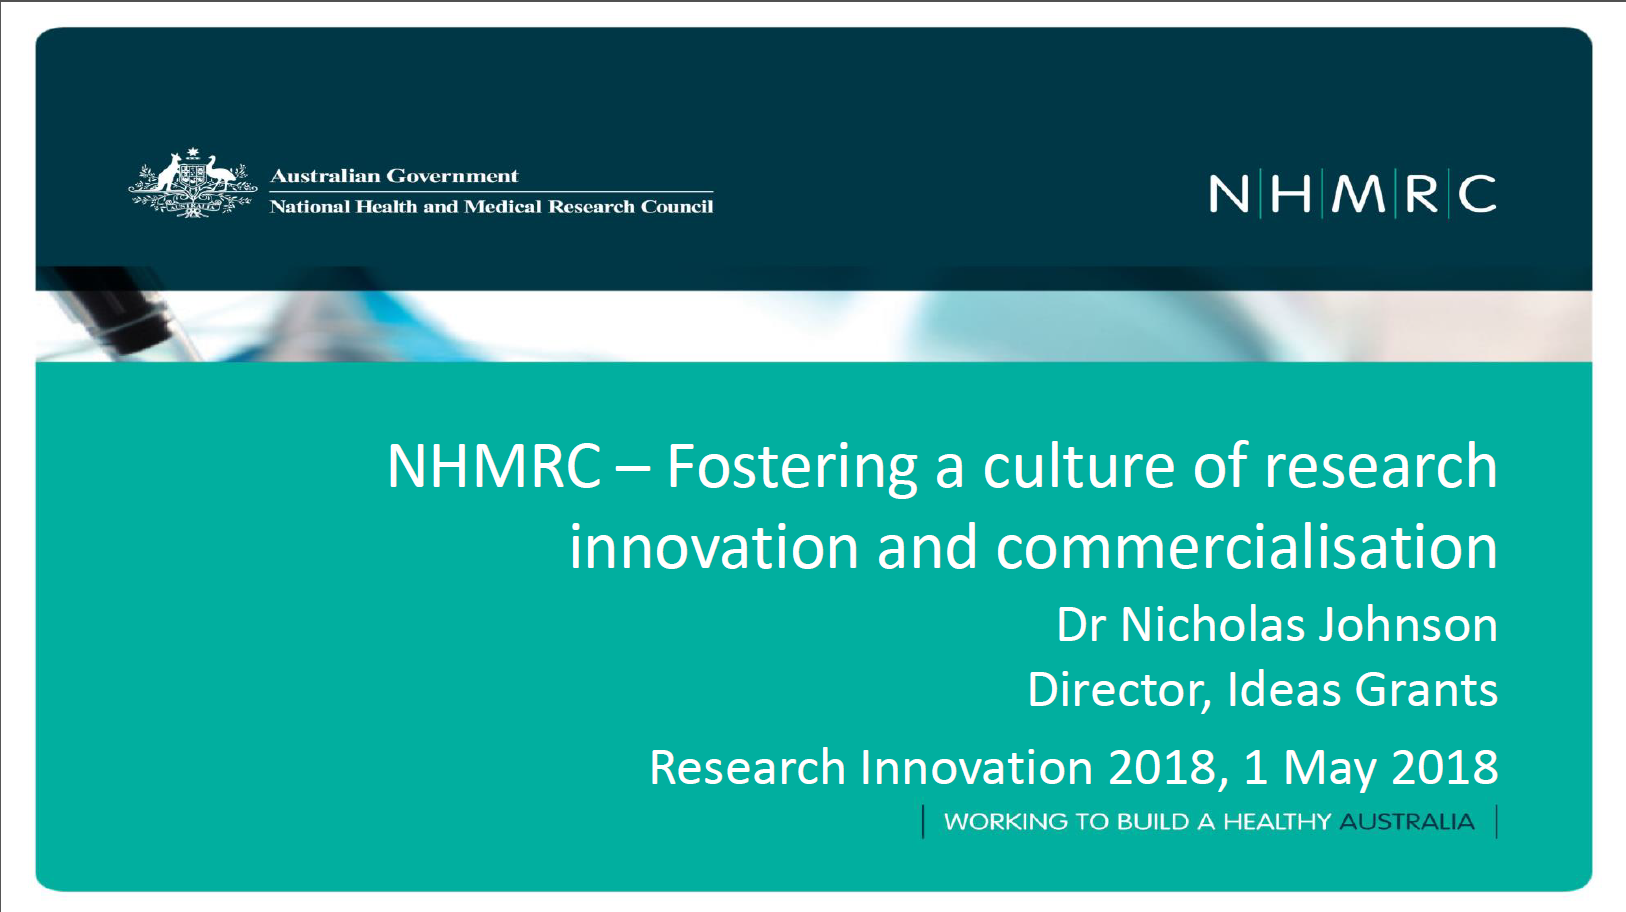 NHMRC Fostering A Culture of Research Commercialisation